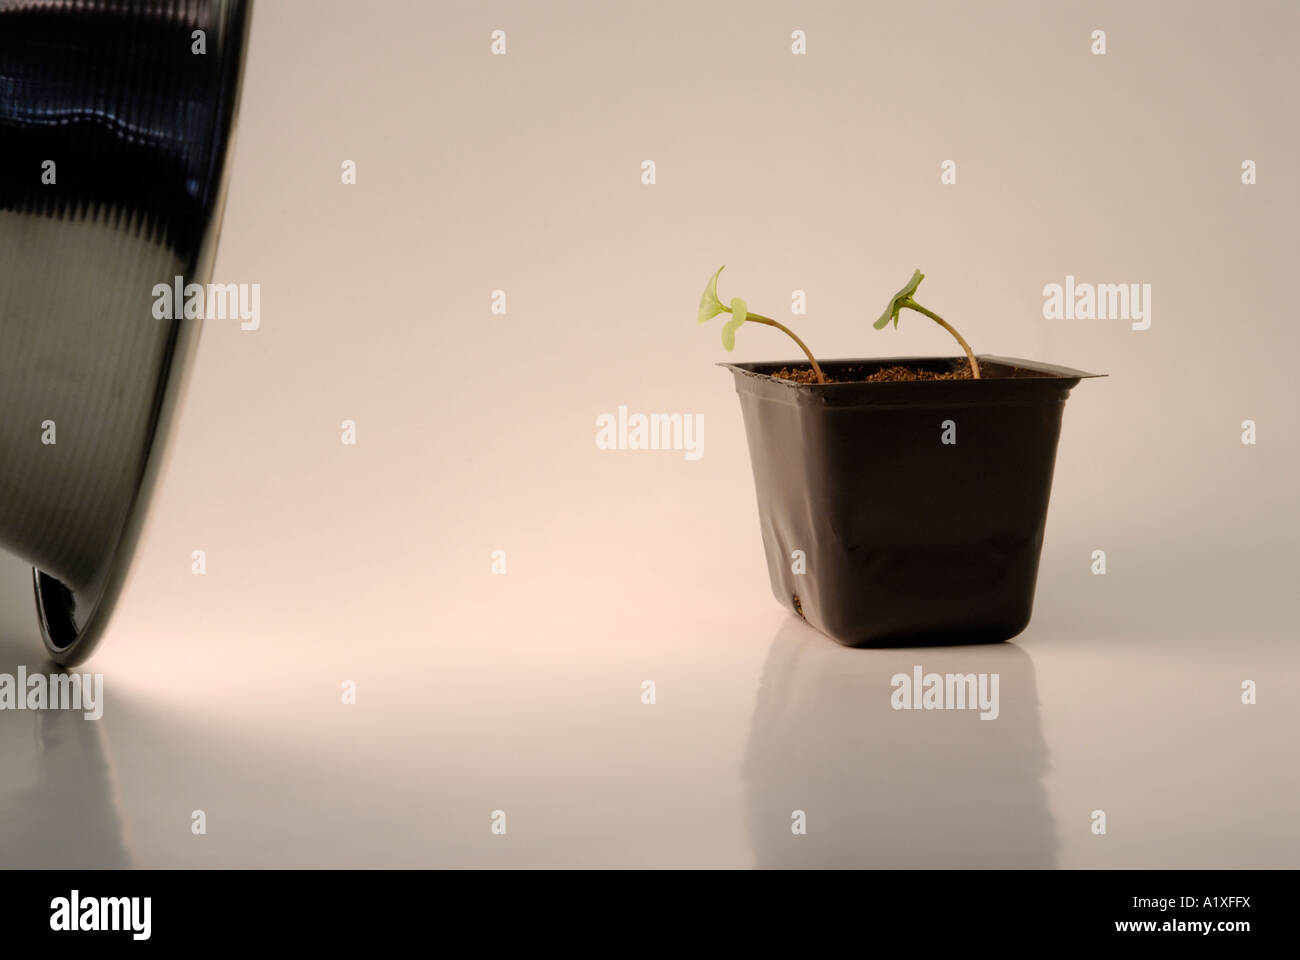 Phototropism, phototropic response in Raphanus seedlings - Stock Image